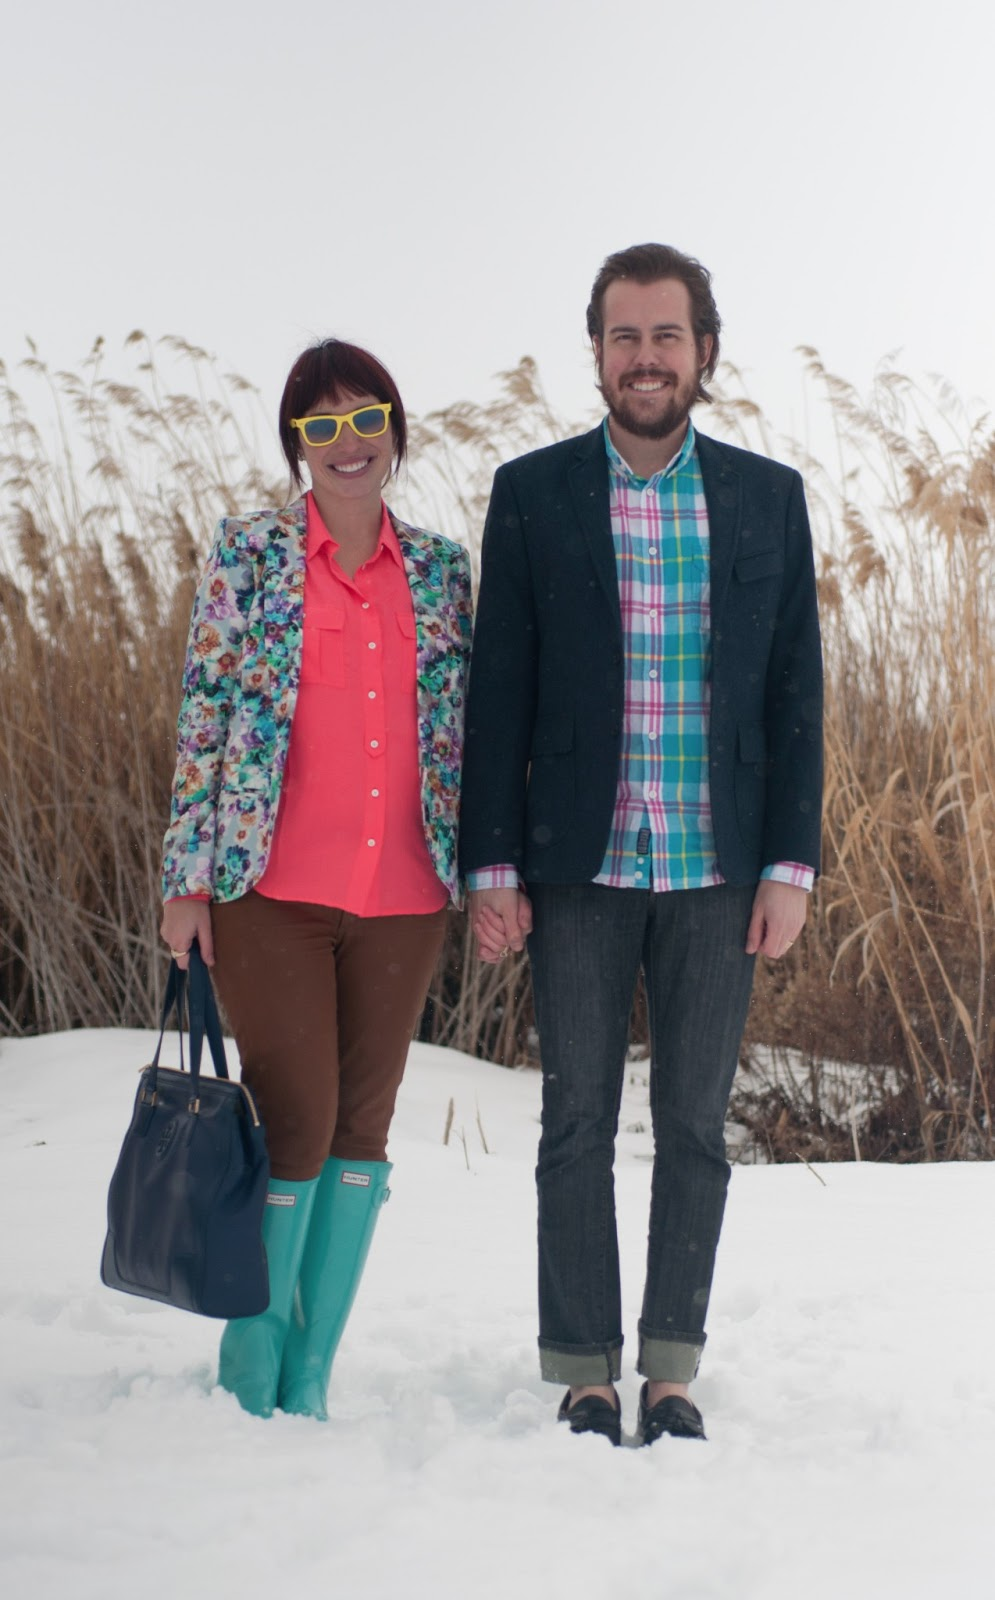 fashion blog, fashion blogger, mens fashion, mens style blog, blazer, floral, floral blazer, blue, pink, teal, hot pink, floral print, floral clothing, nordstrom, jcrew, jcrew blouse, silk blouse, blouse, waxed jeans, waxed pants, citizens of humanity, hunter, hunter boots, rain boots, rain boot, teal hunter boot, blue hunter boots, glossy boots, boot, glossy hunter boot, tory burch, leather purse, navy purse, leather purse, navy leather, ray ban, ray bans, wayfer, wayfer ray ban, earrings, bow earrings, gold earrings, womens style, fashion, style, fashion blogger, womens fashion blogger, mens fashion blogger, personal style, outfit post, style post, banana republic, mens blazer, banana republic blazer, penfield, css, california cheap skate, allen edmonds, classic mens shoes, old man shoe, black dress shoe, plaid, beard